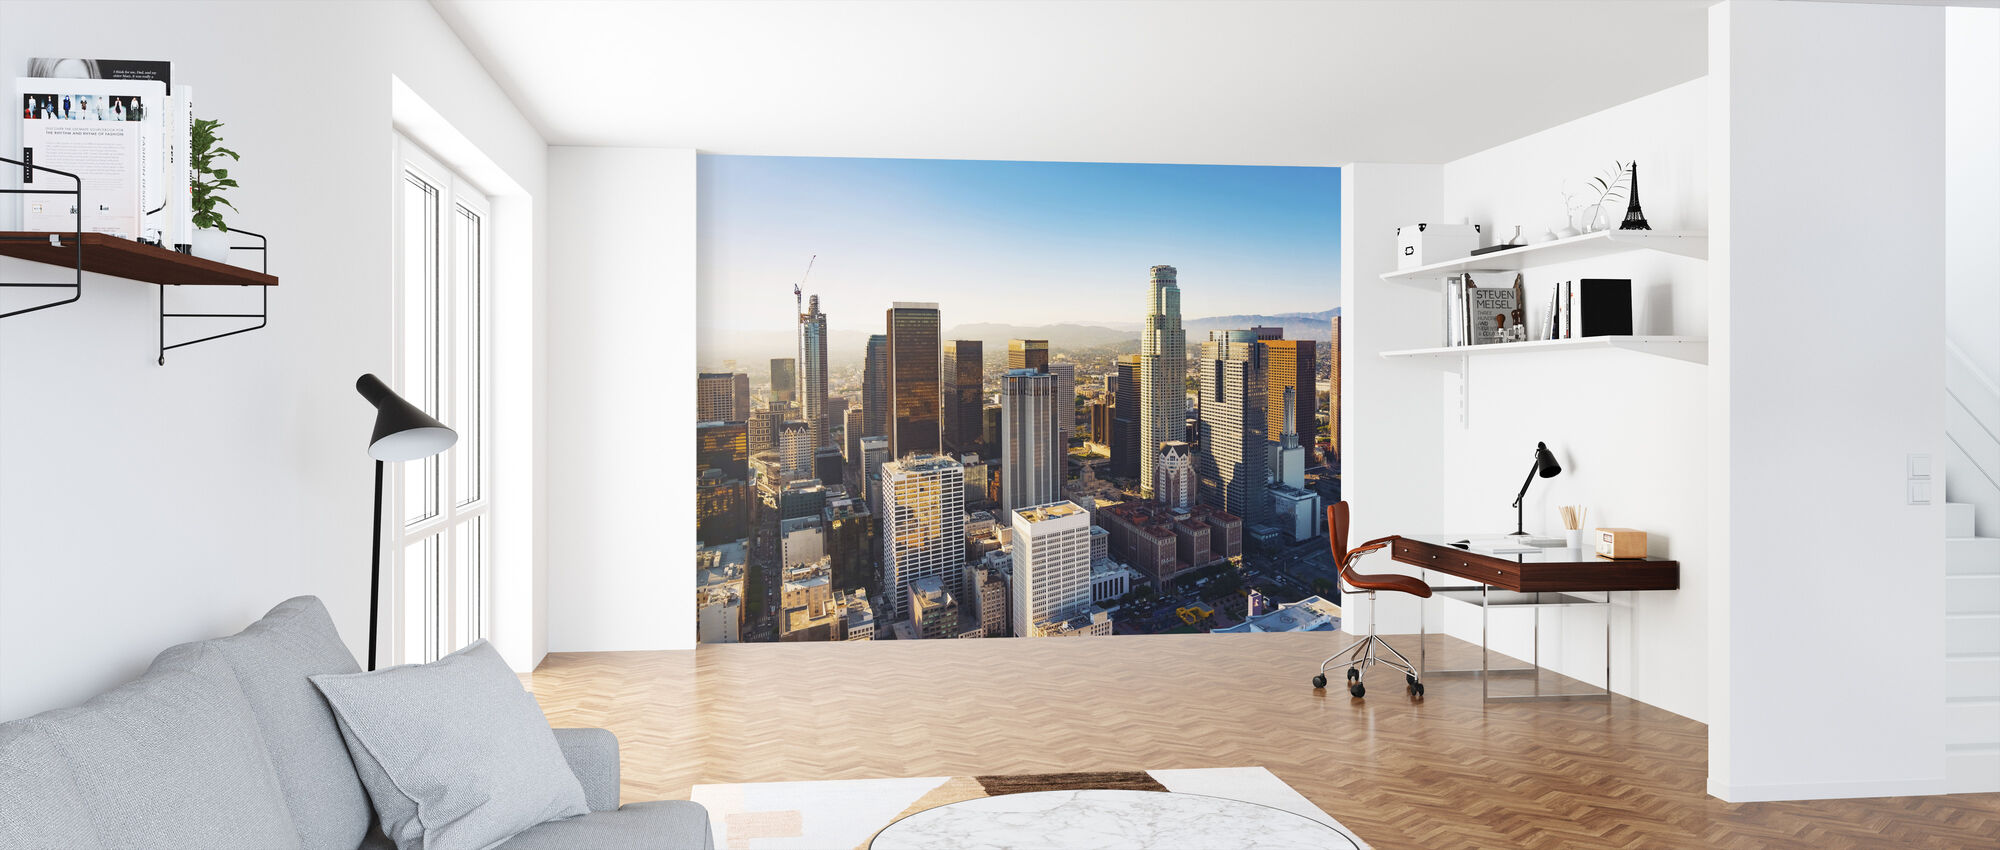 Downtown LA at Sunset - Wallpaper - Office